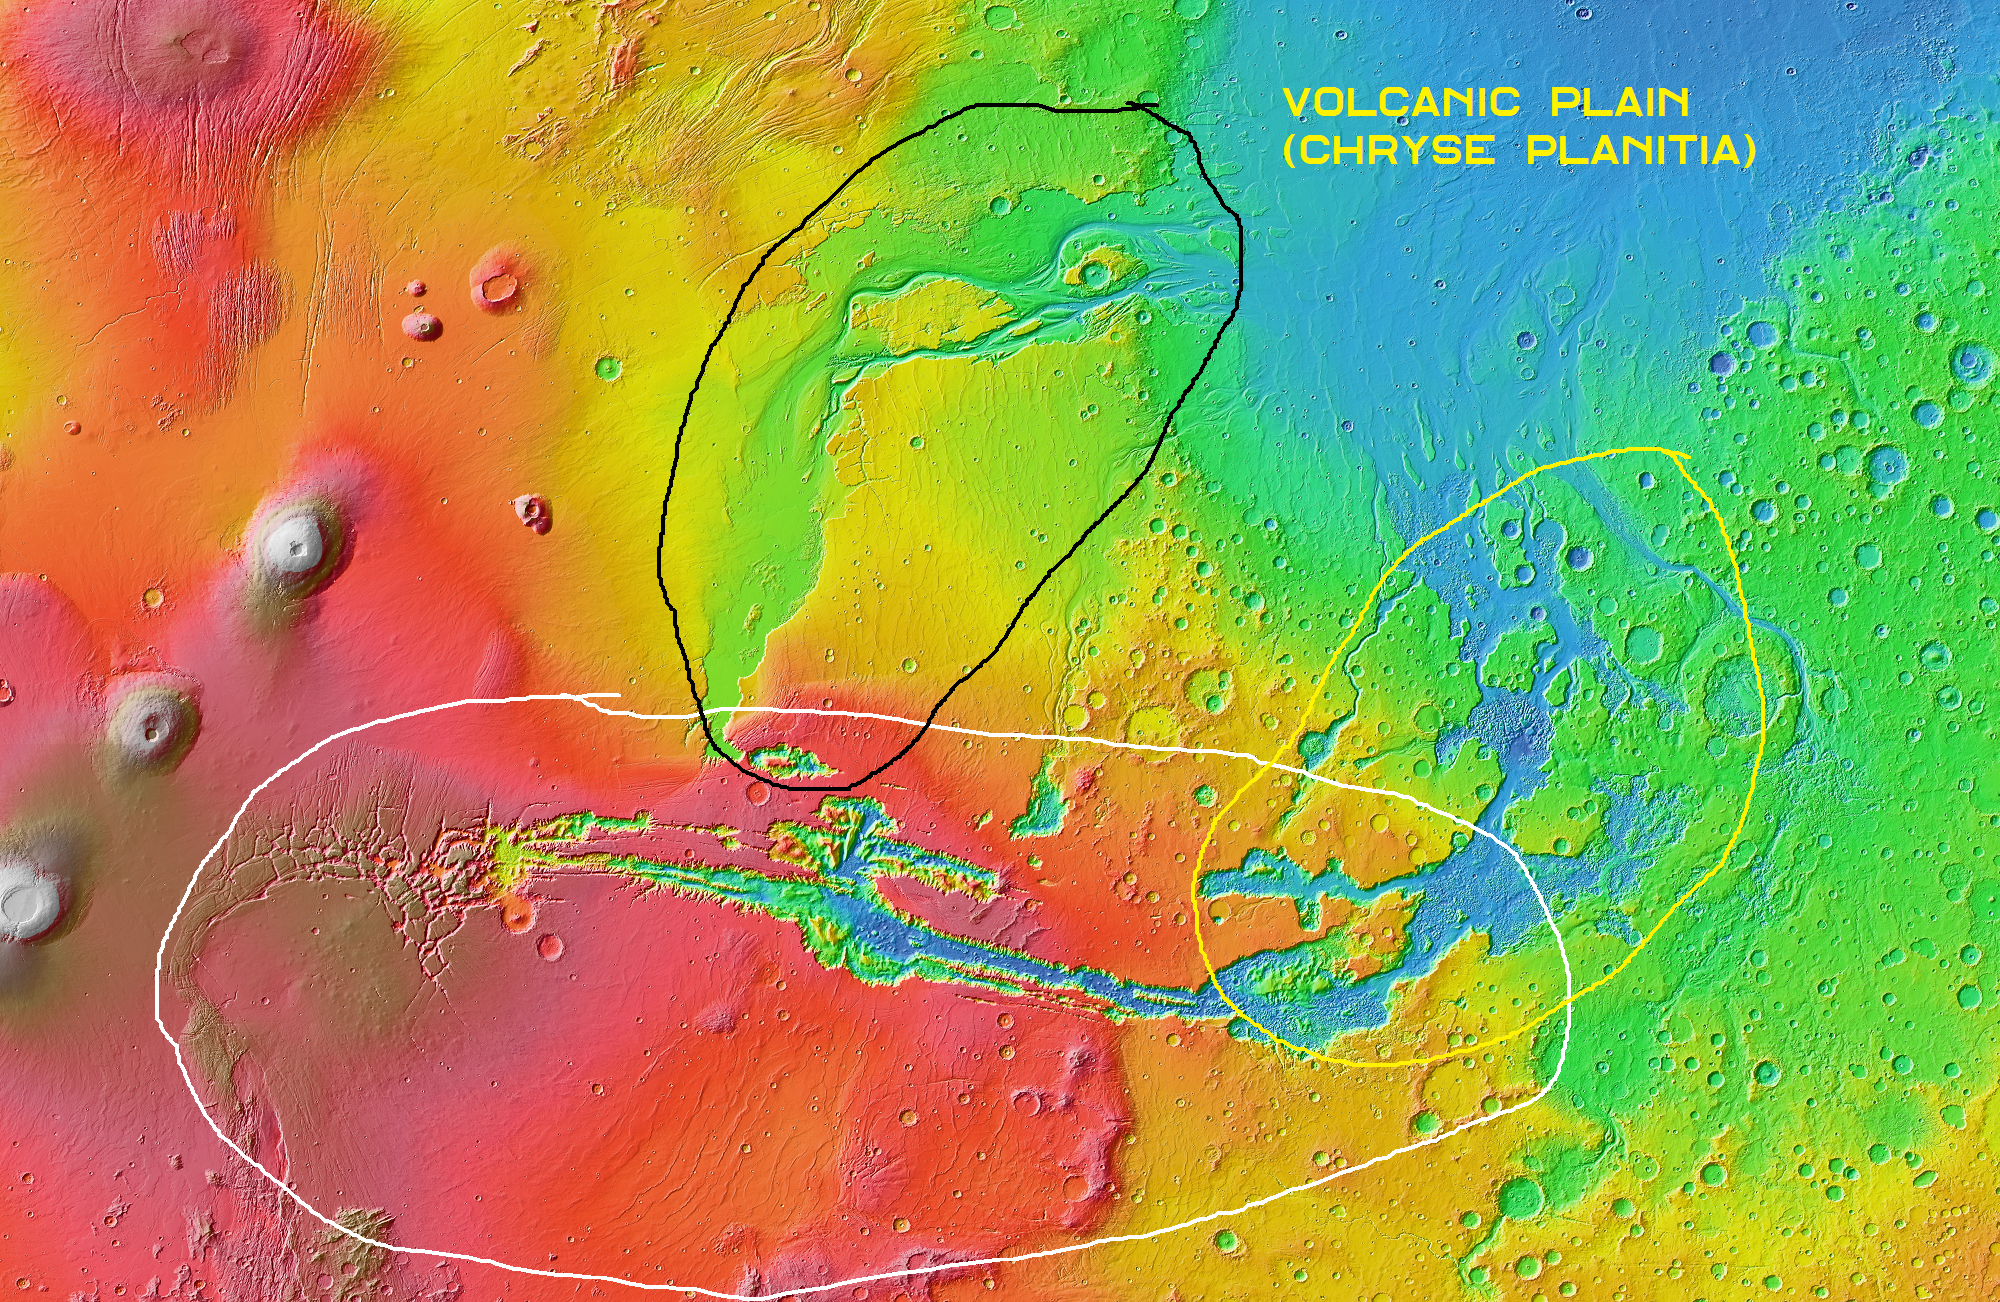 The stress rifts of Valles Marineris are circled in white, the outflow channels from the right end of these rifts are circled in yellow and flow out onto the volcanic plains of Chryse Planitia, along with the outflow channels of Kasei Valles (circled in black).